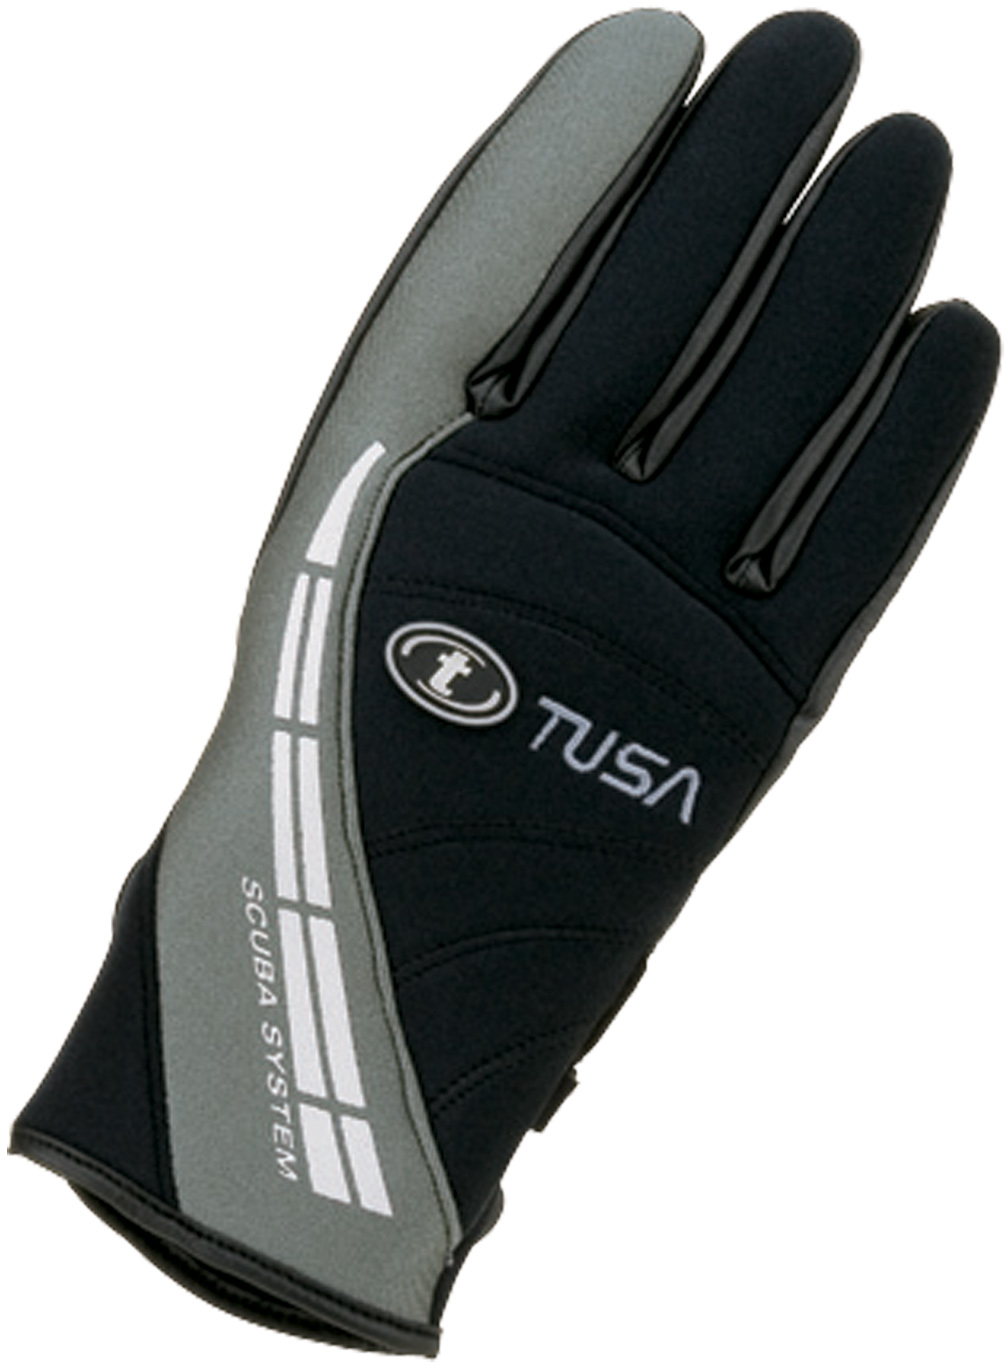 TUSA 2mm Warm Water Dive Glove